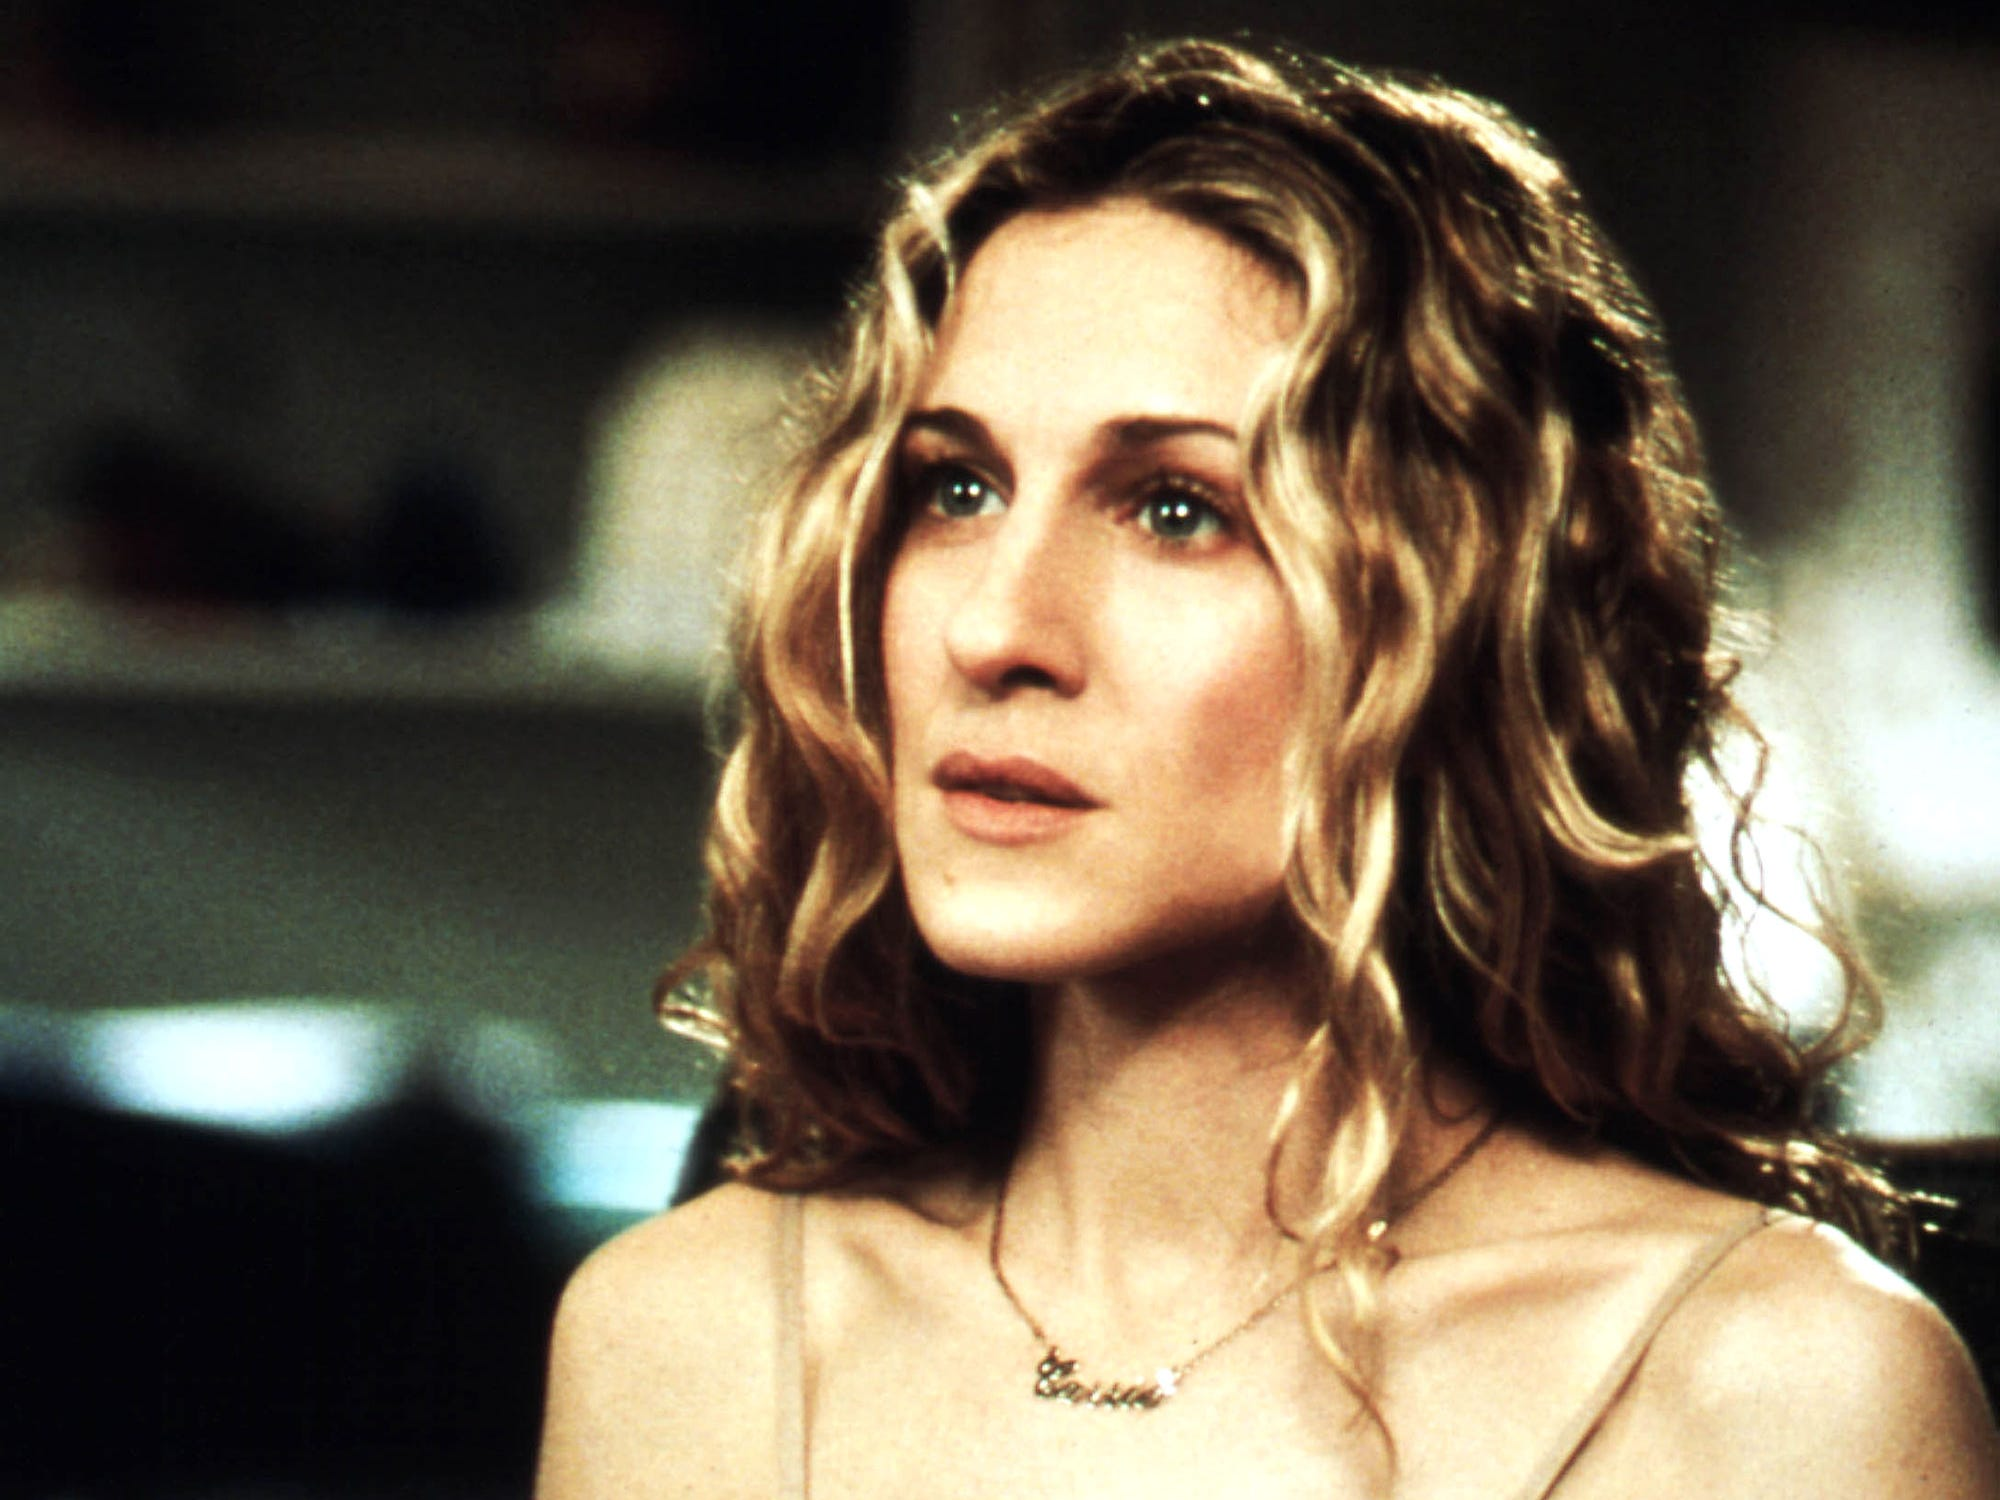 Carrie necklace in sex and the city